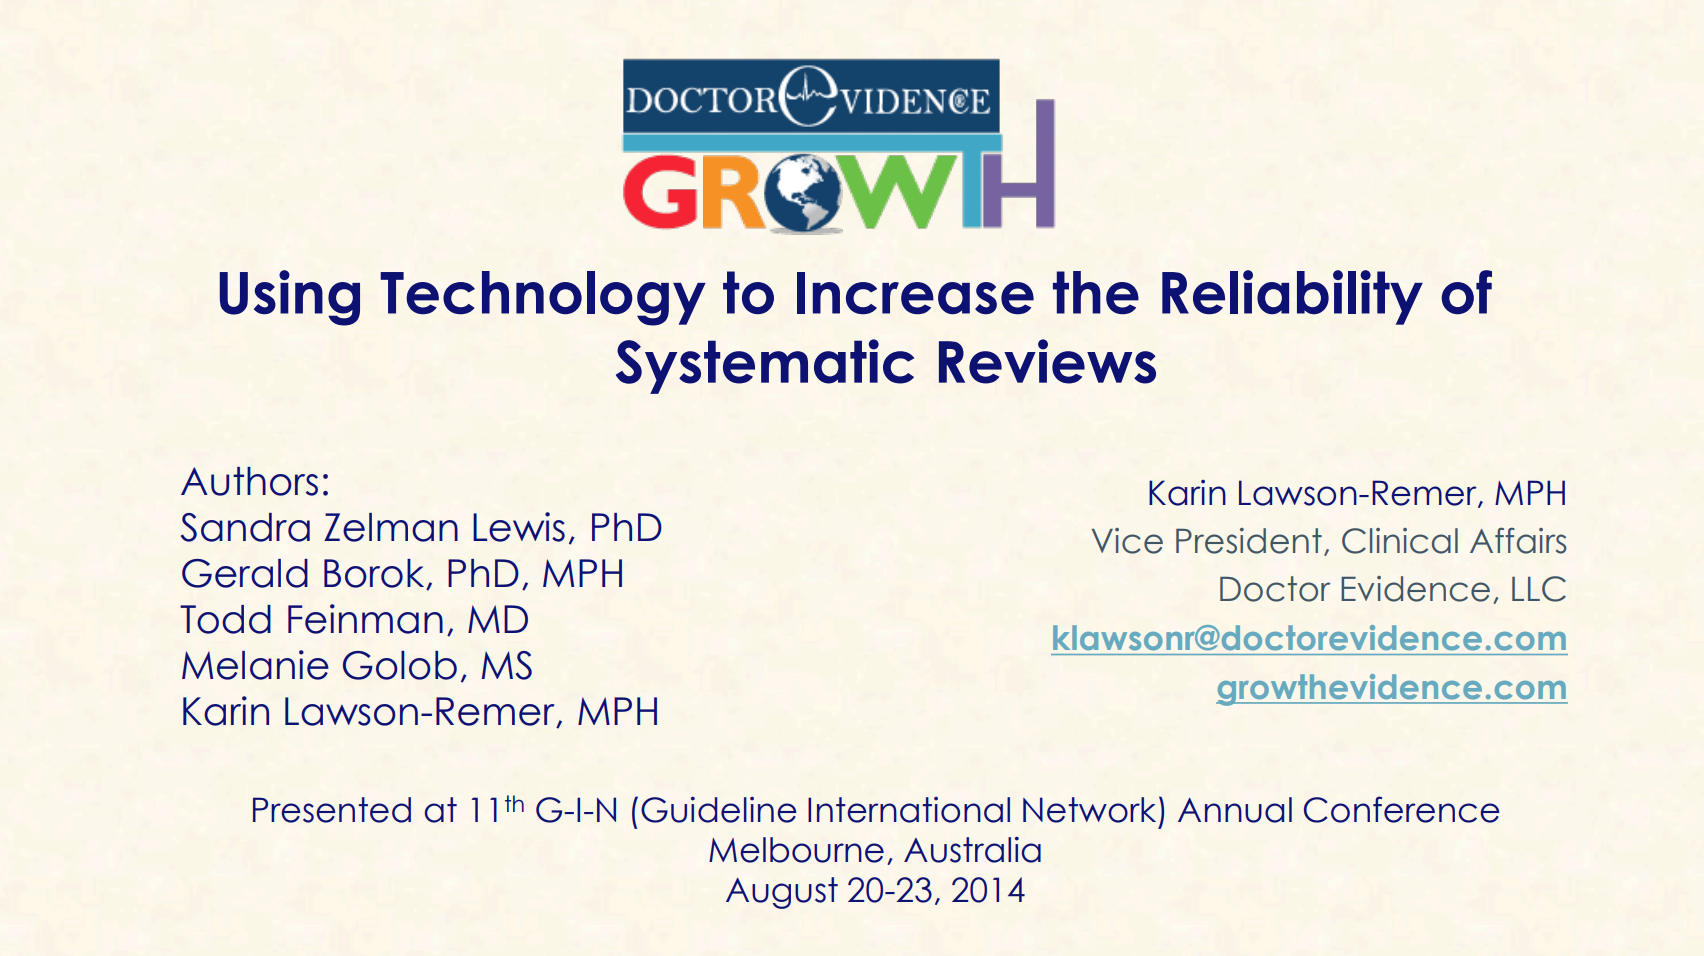 Using Technology to Increase the Reliability of Systematic Reviews.